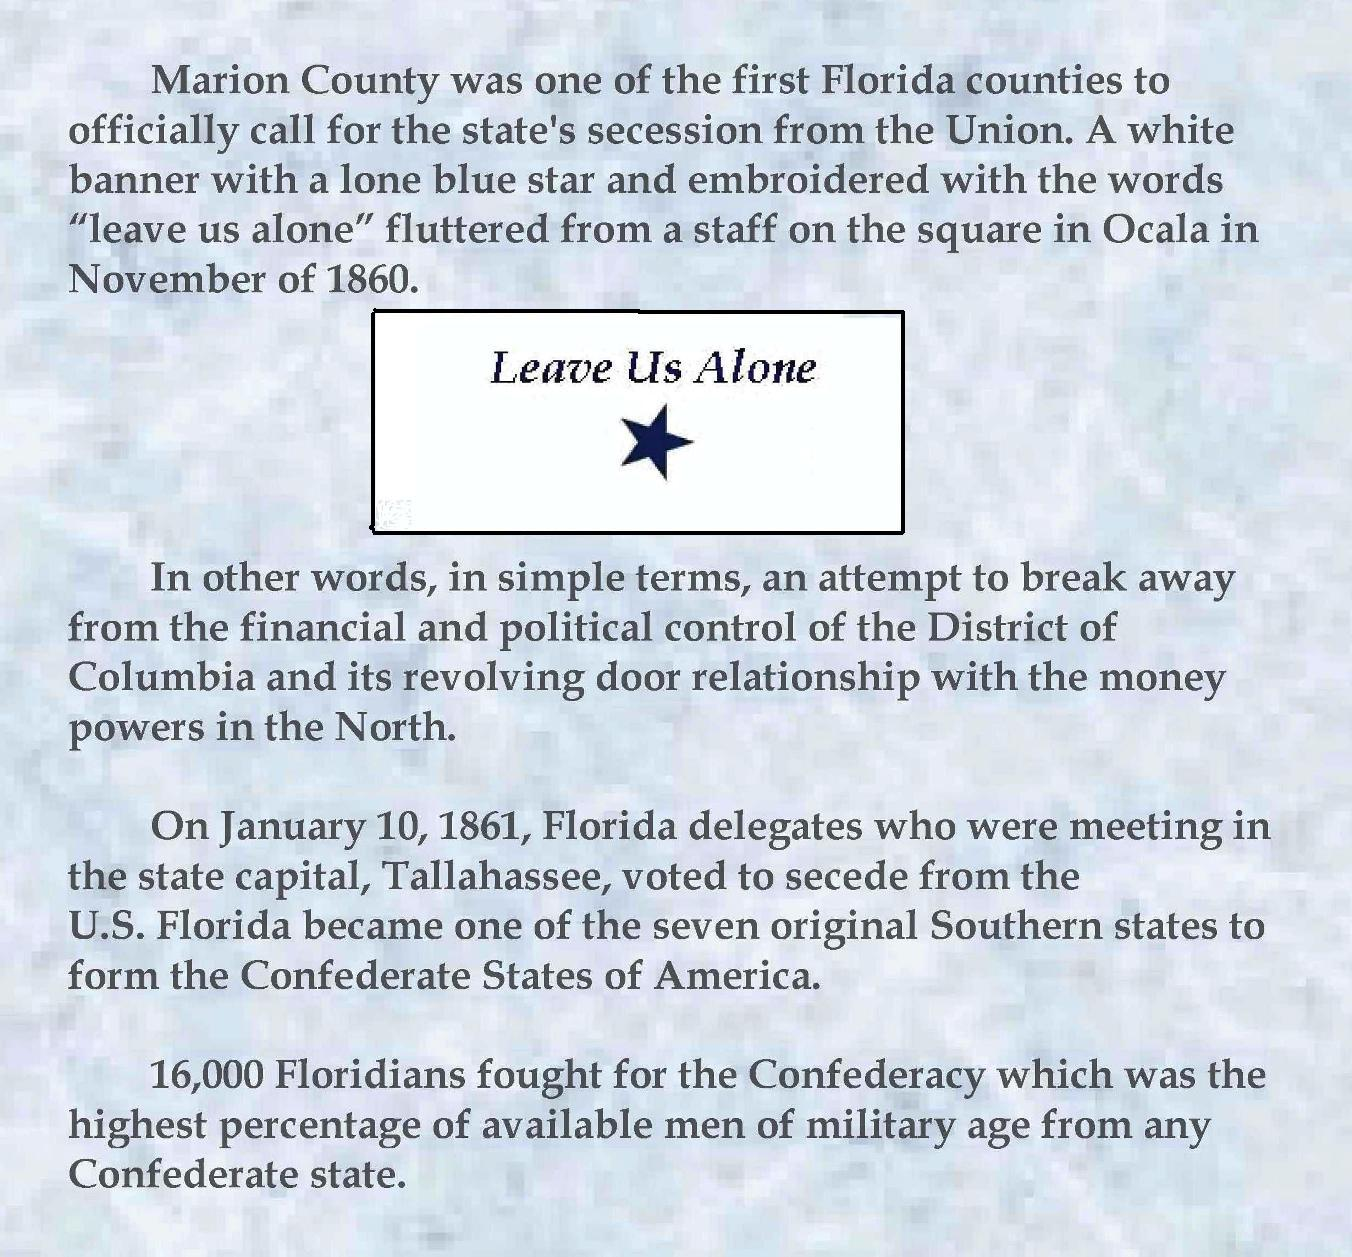 Marion County was one of the first Florida counties